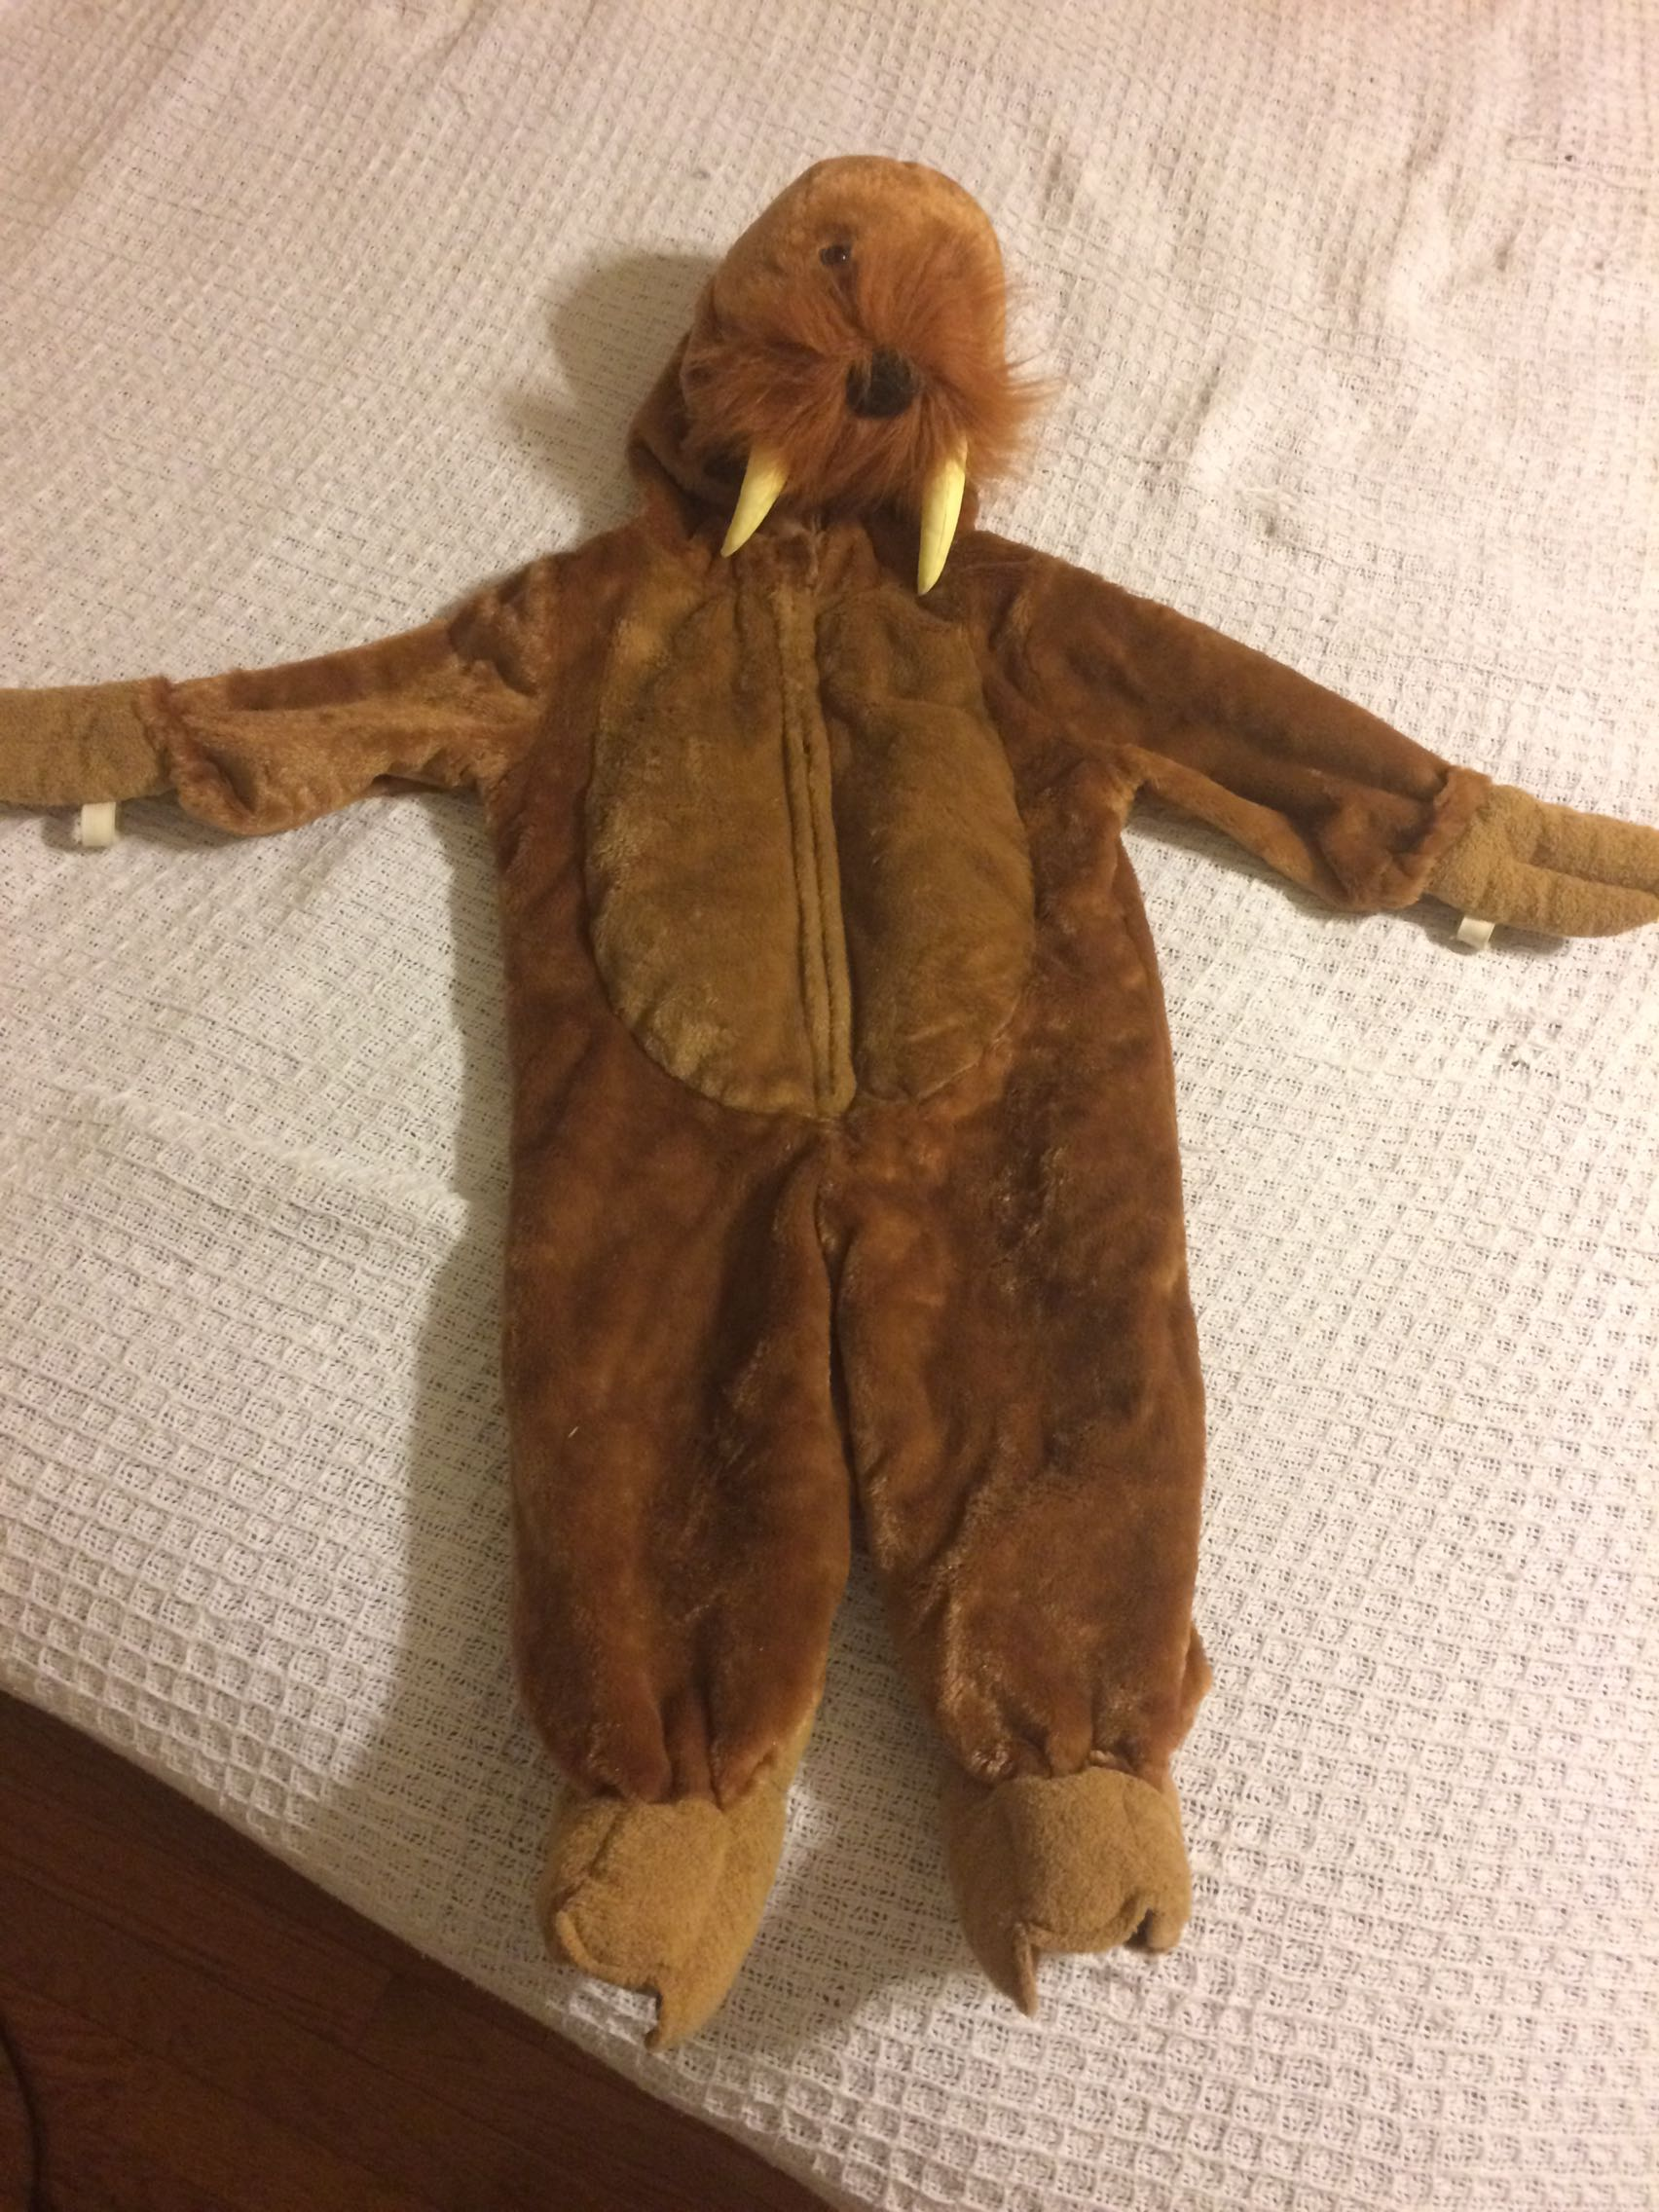 WALRUS costume! Seriously adorable 18 months